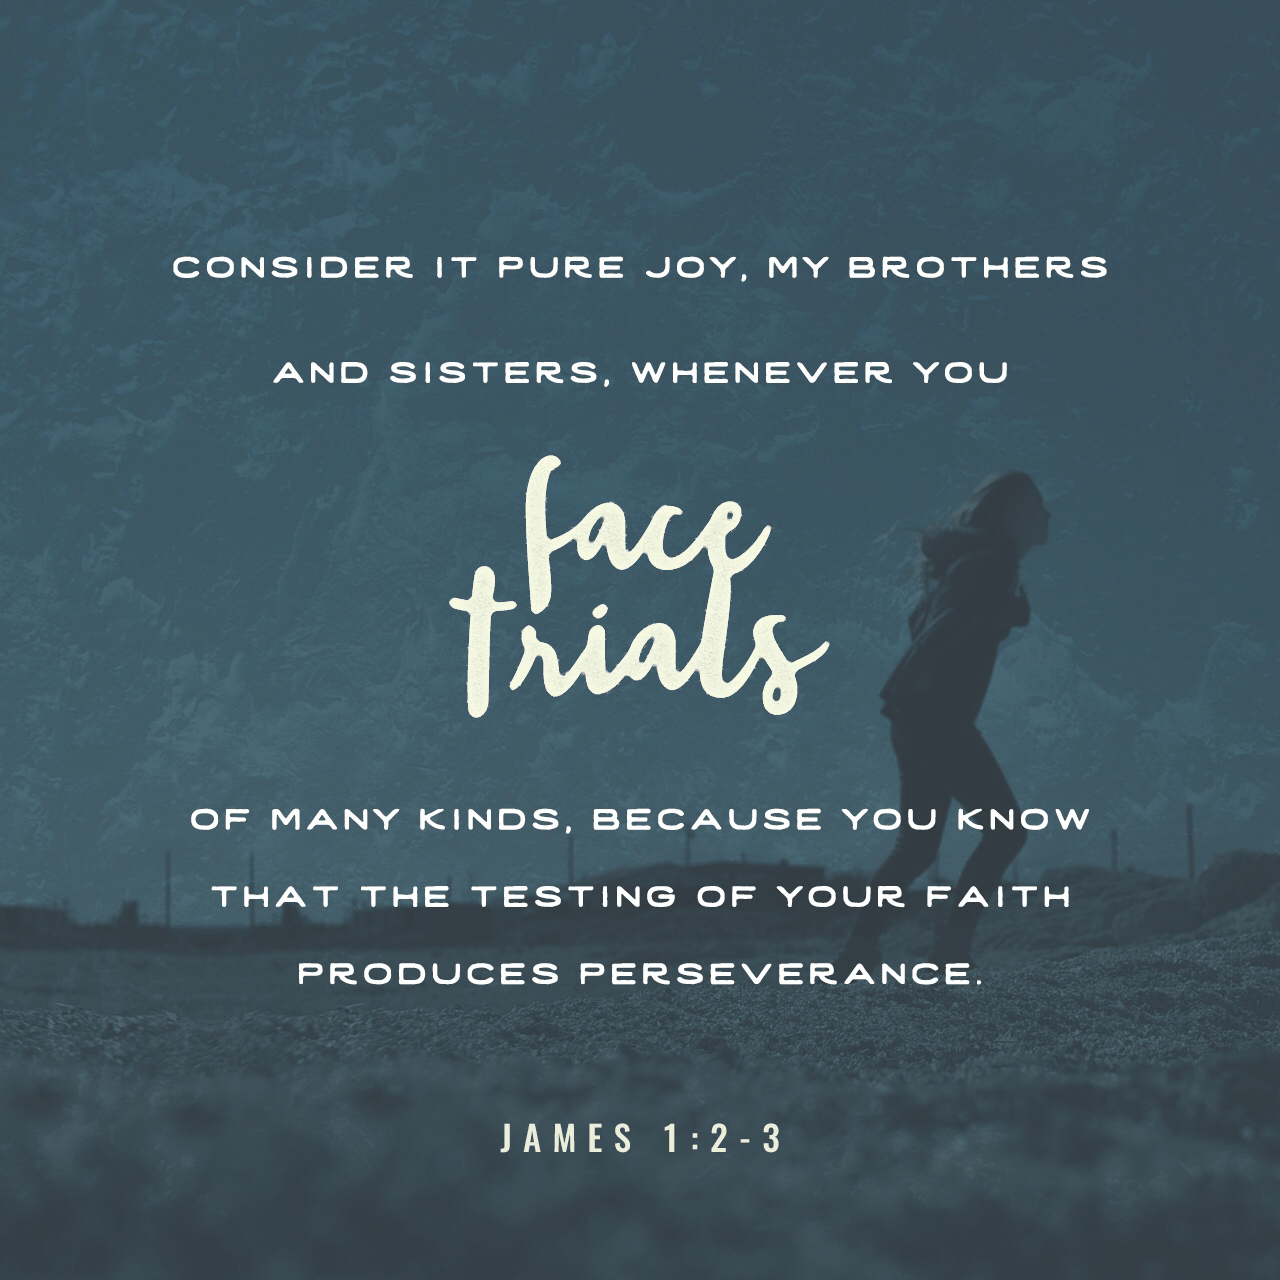 VOTD October 4 - Consider it all joy, my brethren, when you encounter various trials, knowing that the testing of your faith produces endurance. James‬ ‭1:2-3‬ ‭NASB‬‬